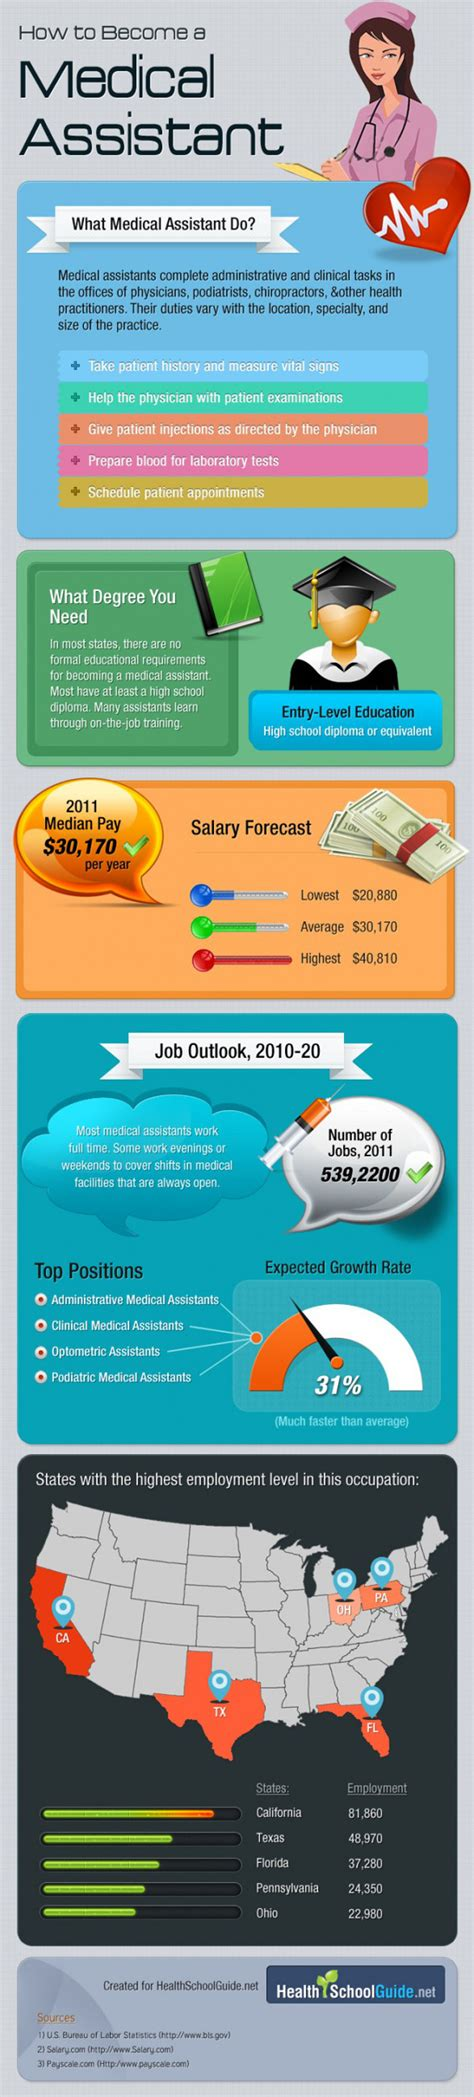 define baconian induction office assistant salary per hour hrfnd